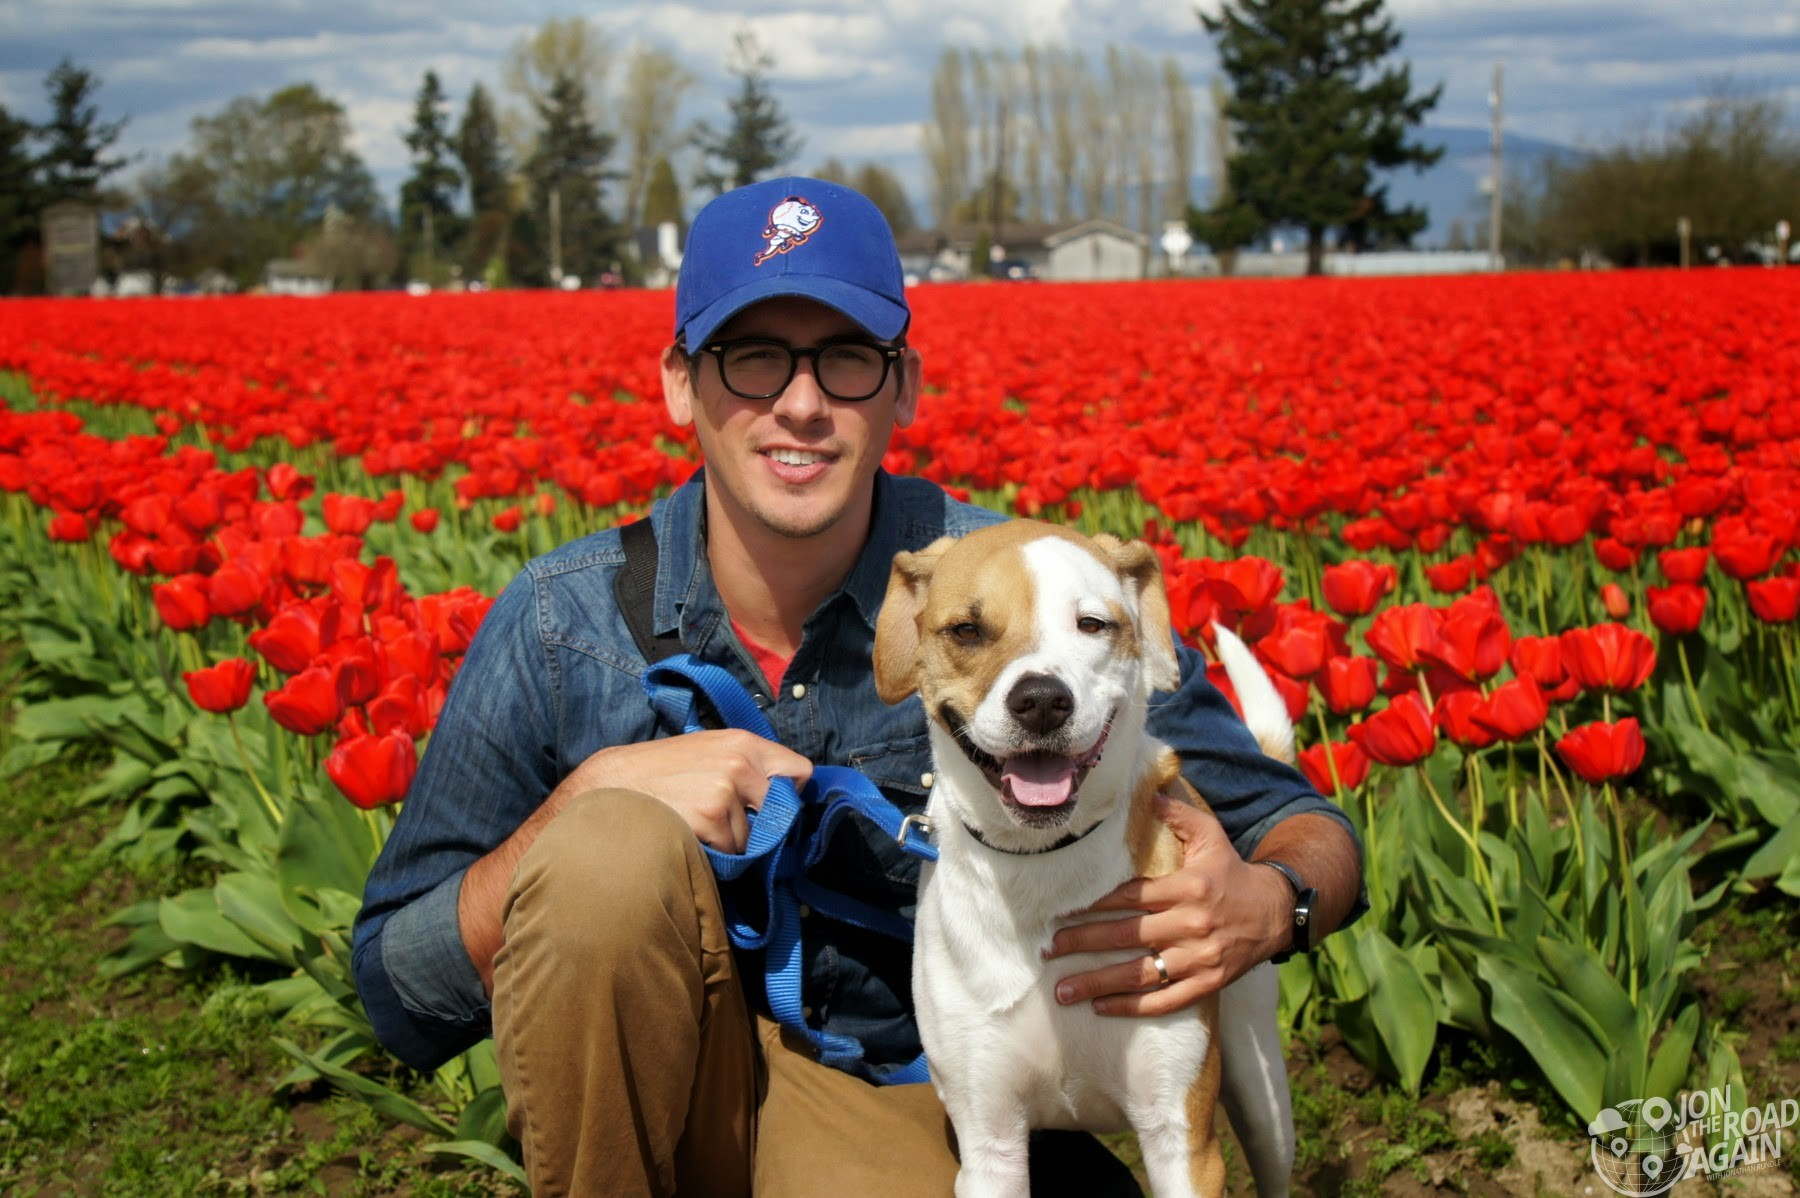 Graham and Jonathan at Skagit Vallet Tulip Festival